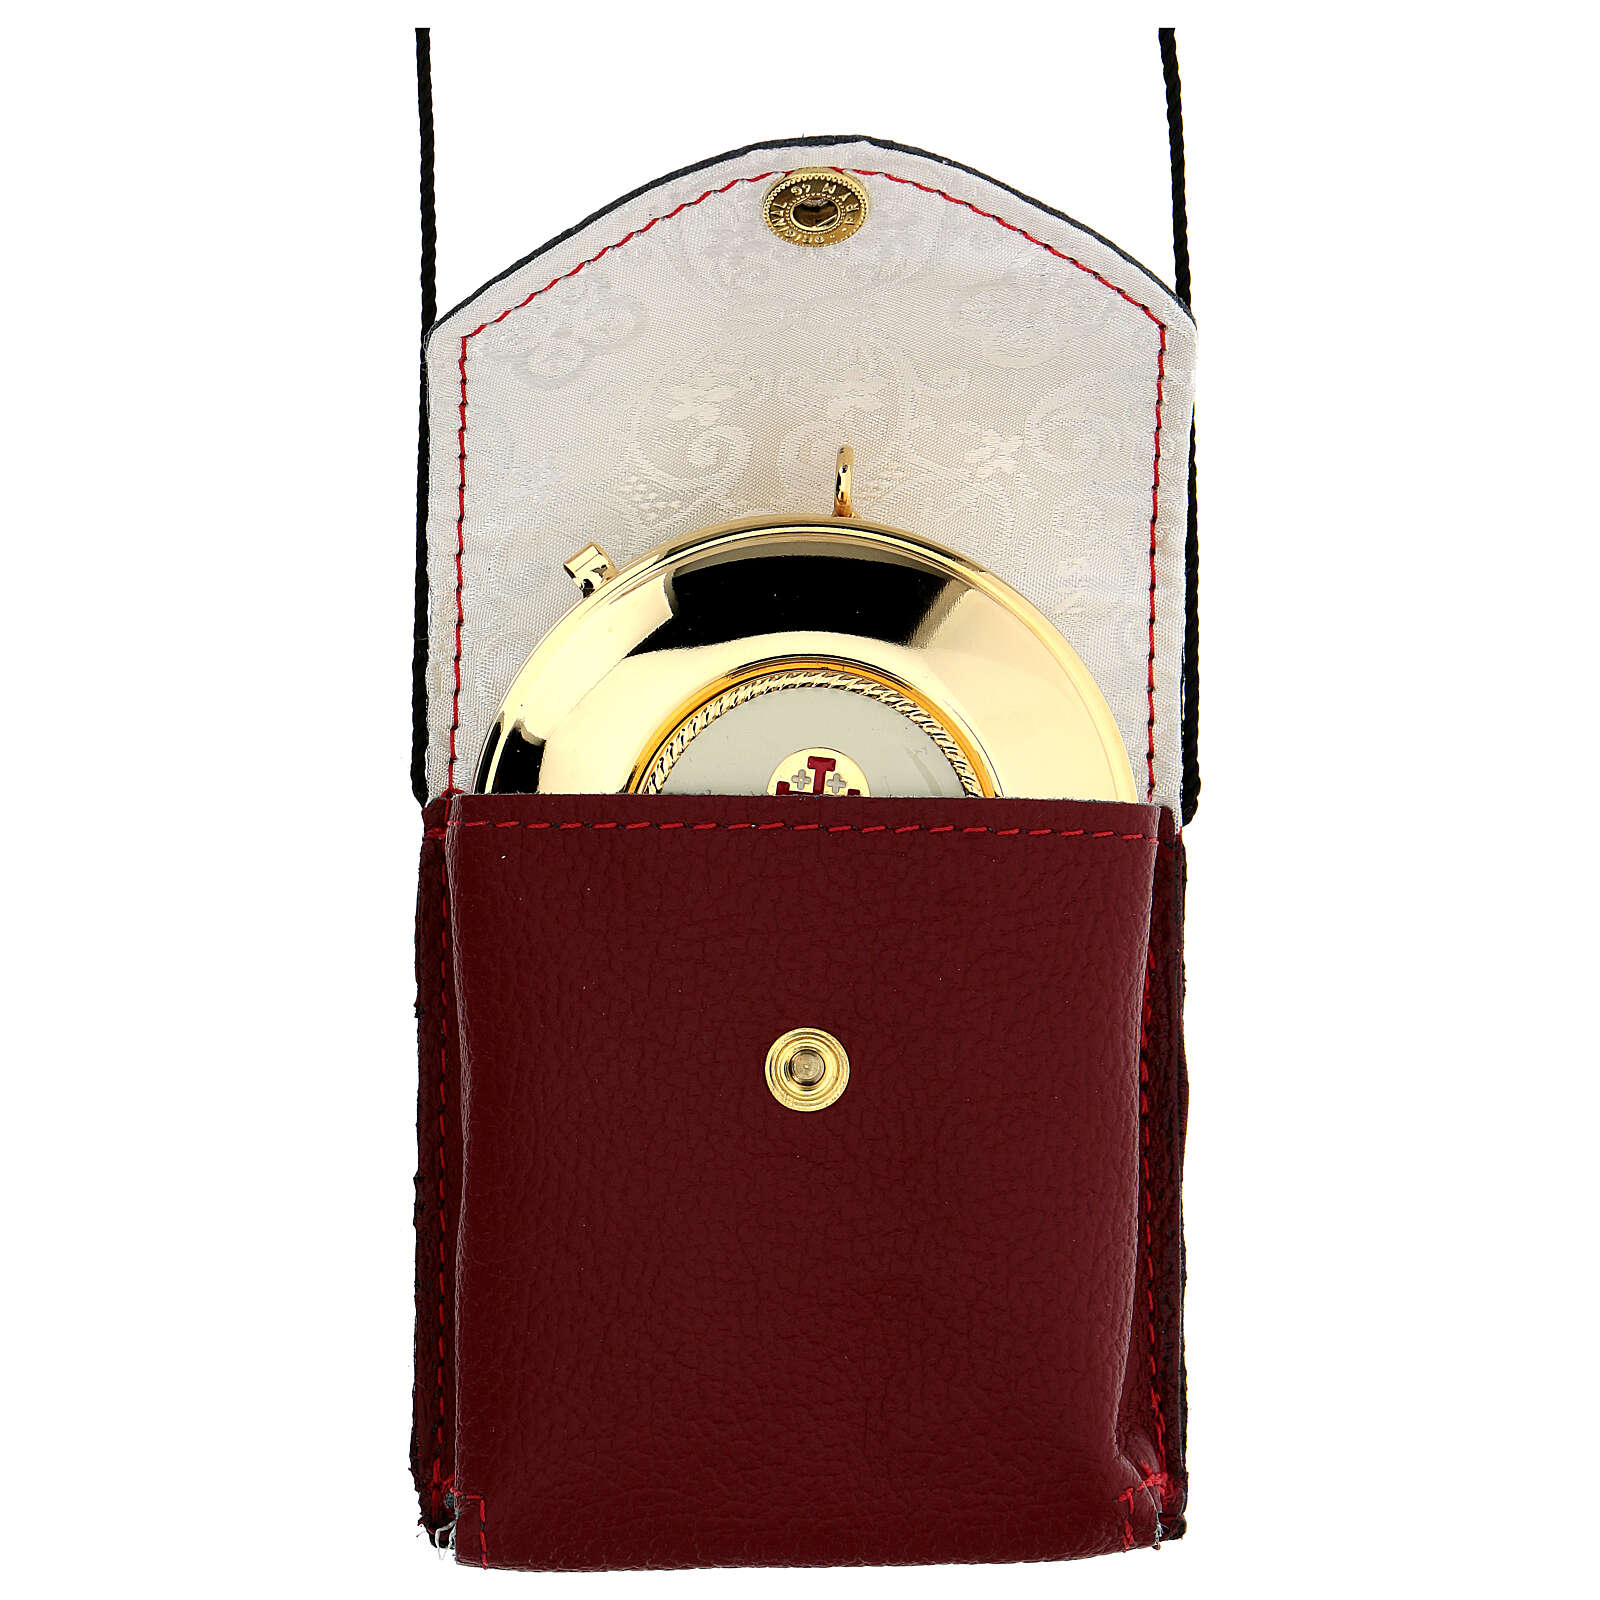 Red leather burse with string and 3 in pyx 3